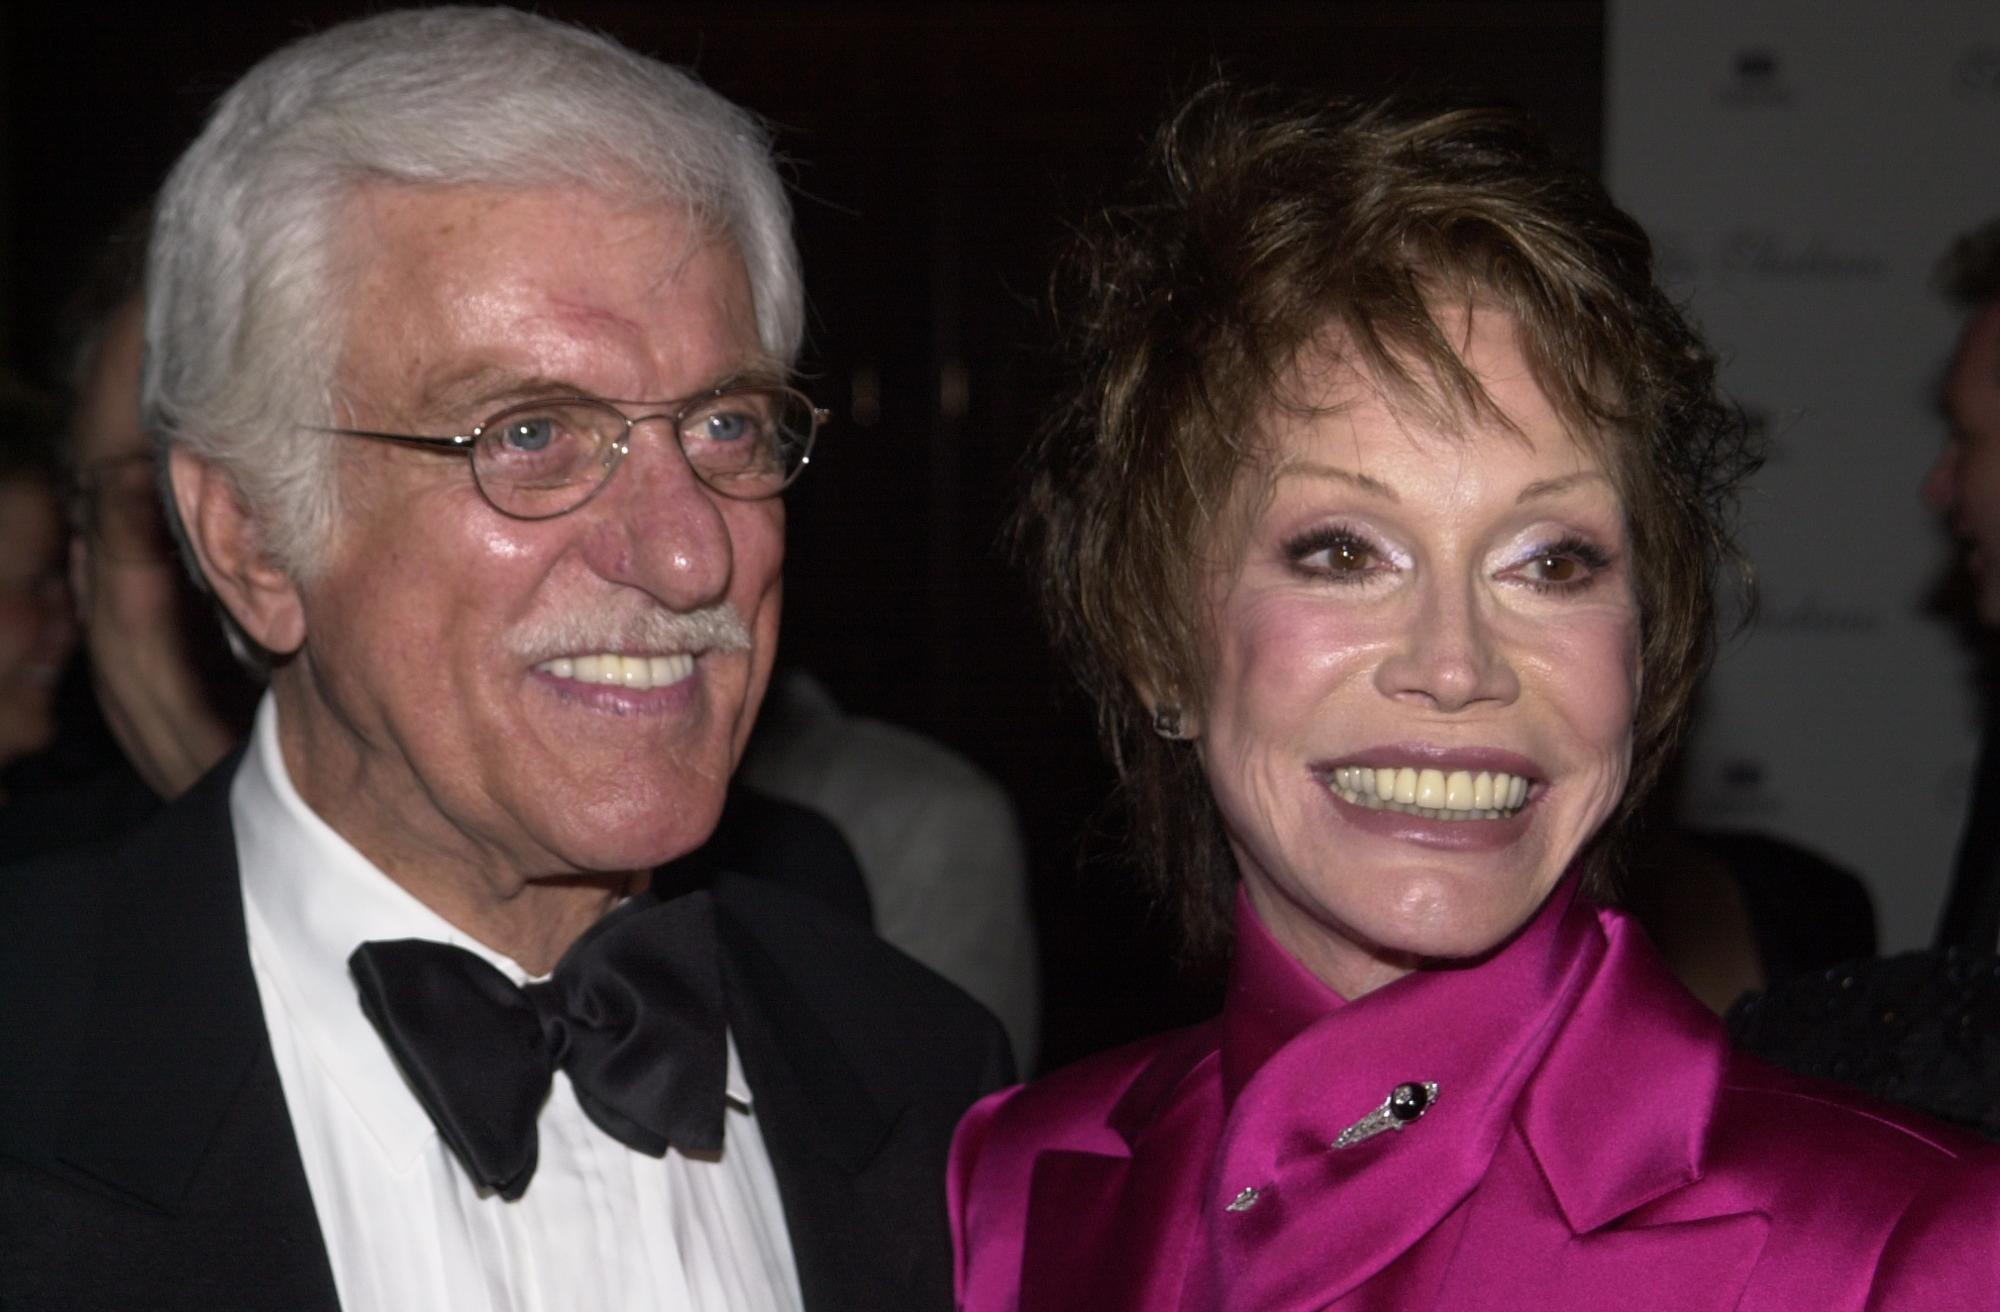 Dick Van Dyke and Mary Tyler Moore on October 7, 2000 in Century City, California | Photo: Getty Images/Global Images Ukraine